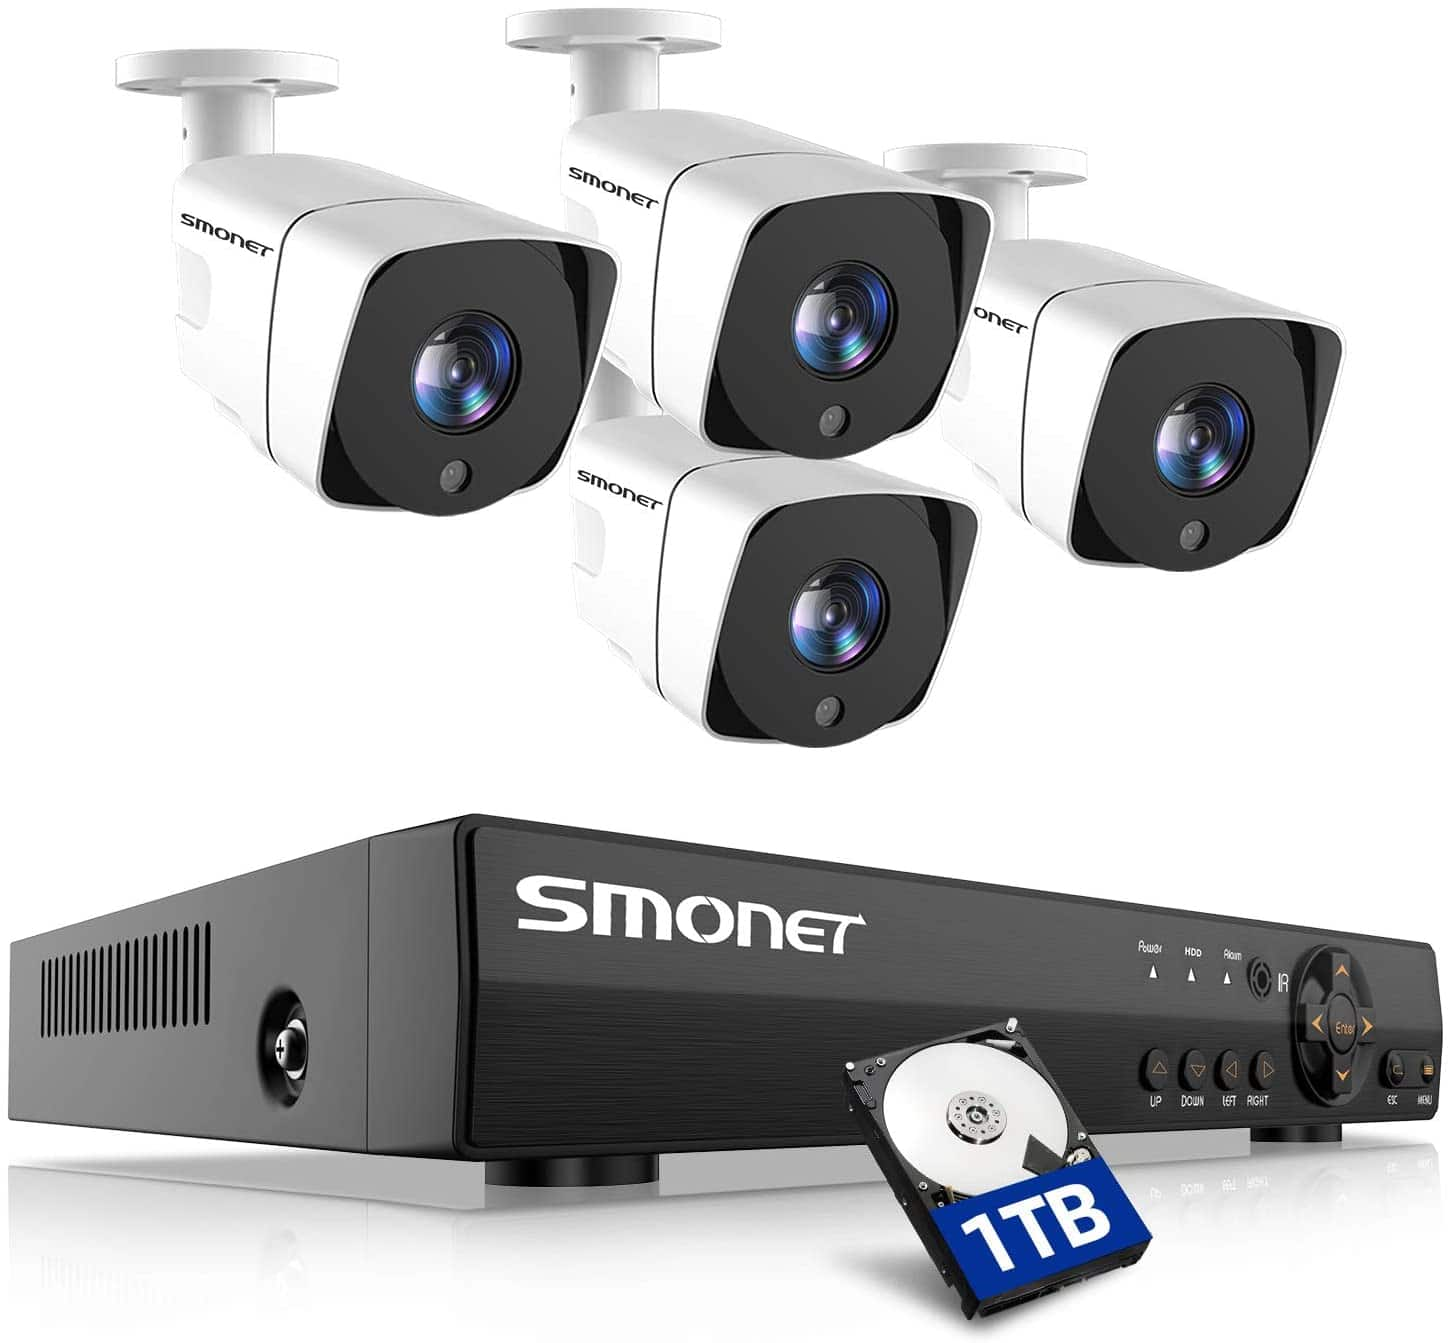 139.99 Smonet Wired DVR with 4 Cameras, and a 1TB hard Drive $139.99